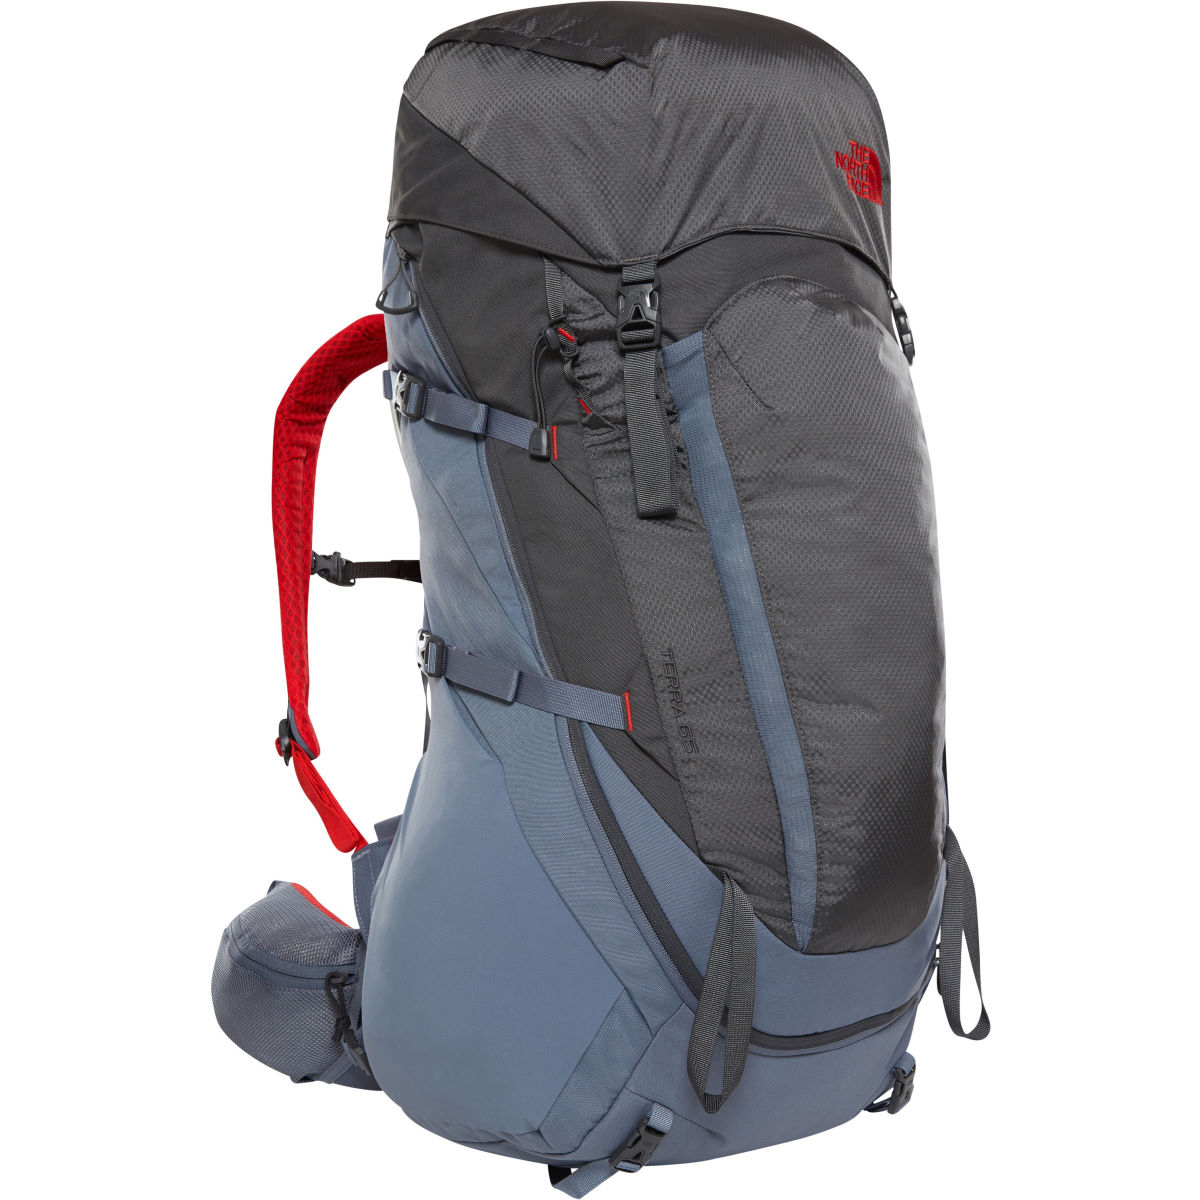 The North Face The North Face Terra 65 Backpack   Hiking Bags